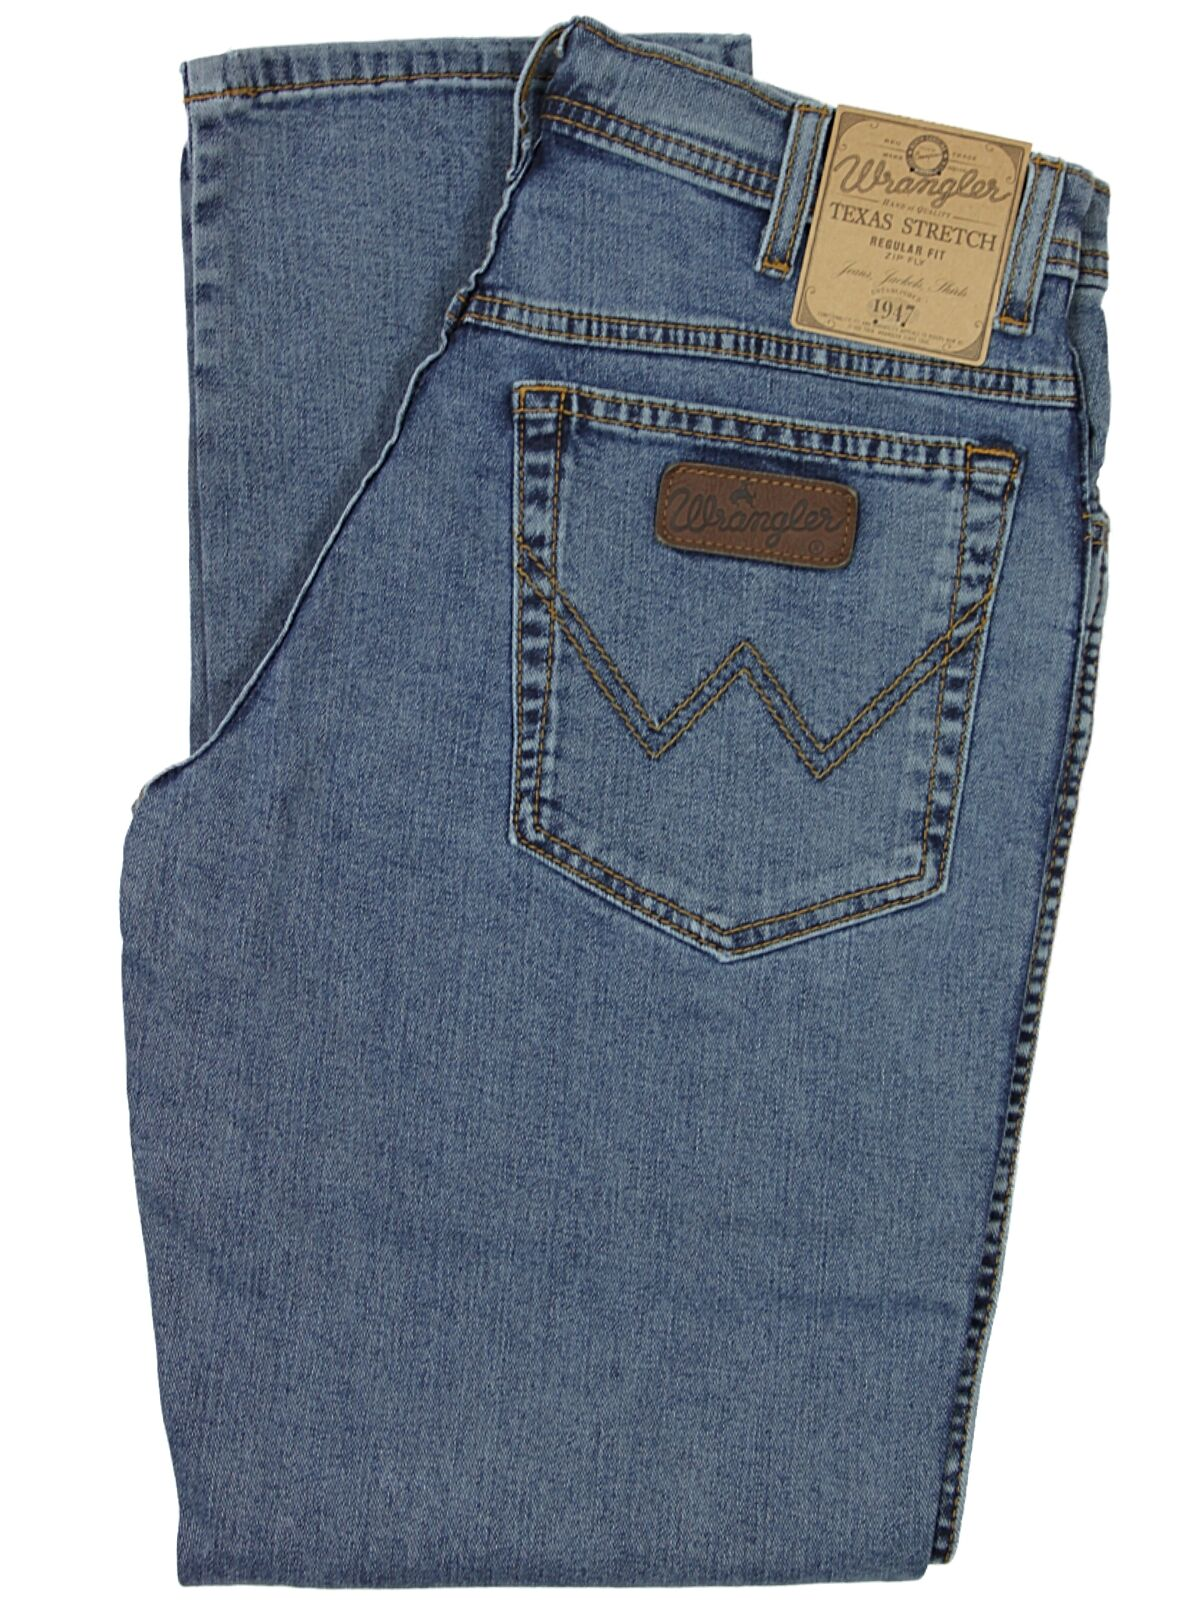 WRANGLER BNWT MENS TEXAS STONE WASH STRETCH REGULAR FIT FIT FIT JEANS 30 TO 50 62ce87